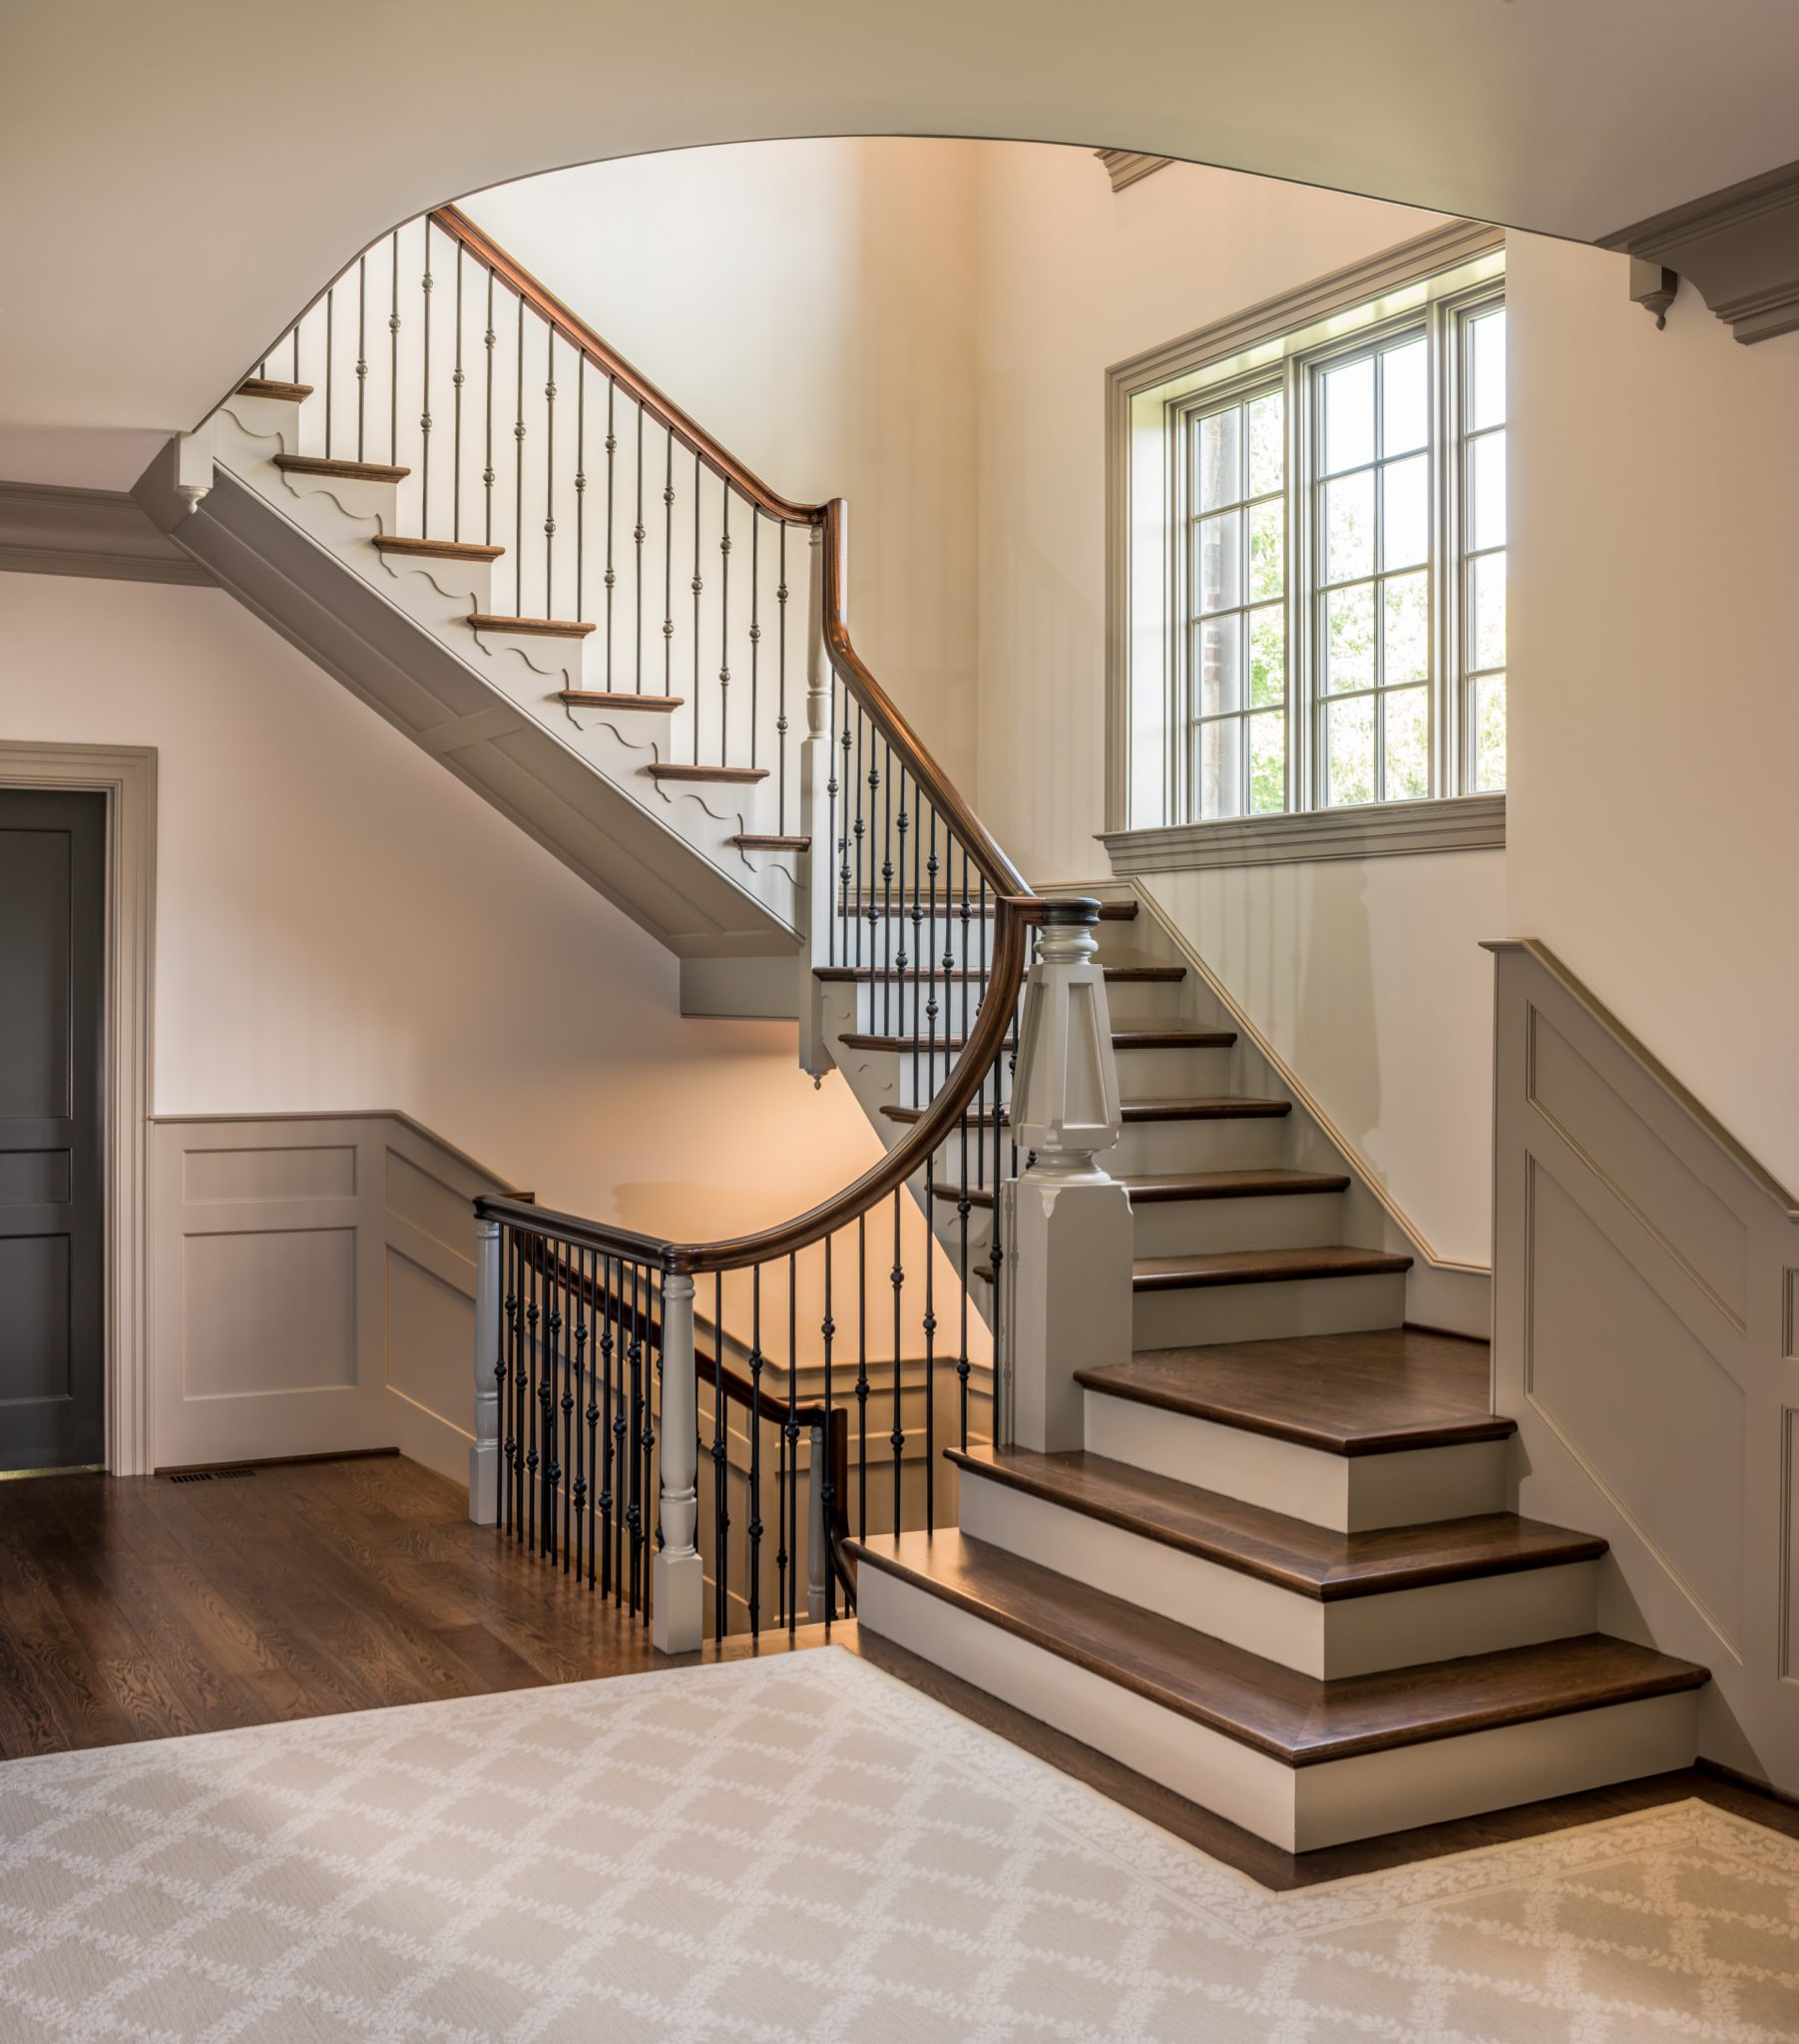 Private Residence Traditional Staircase in Greenville, Delaware by Period Architecture